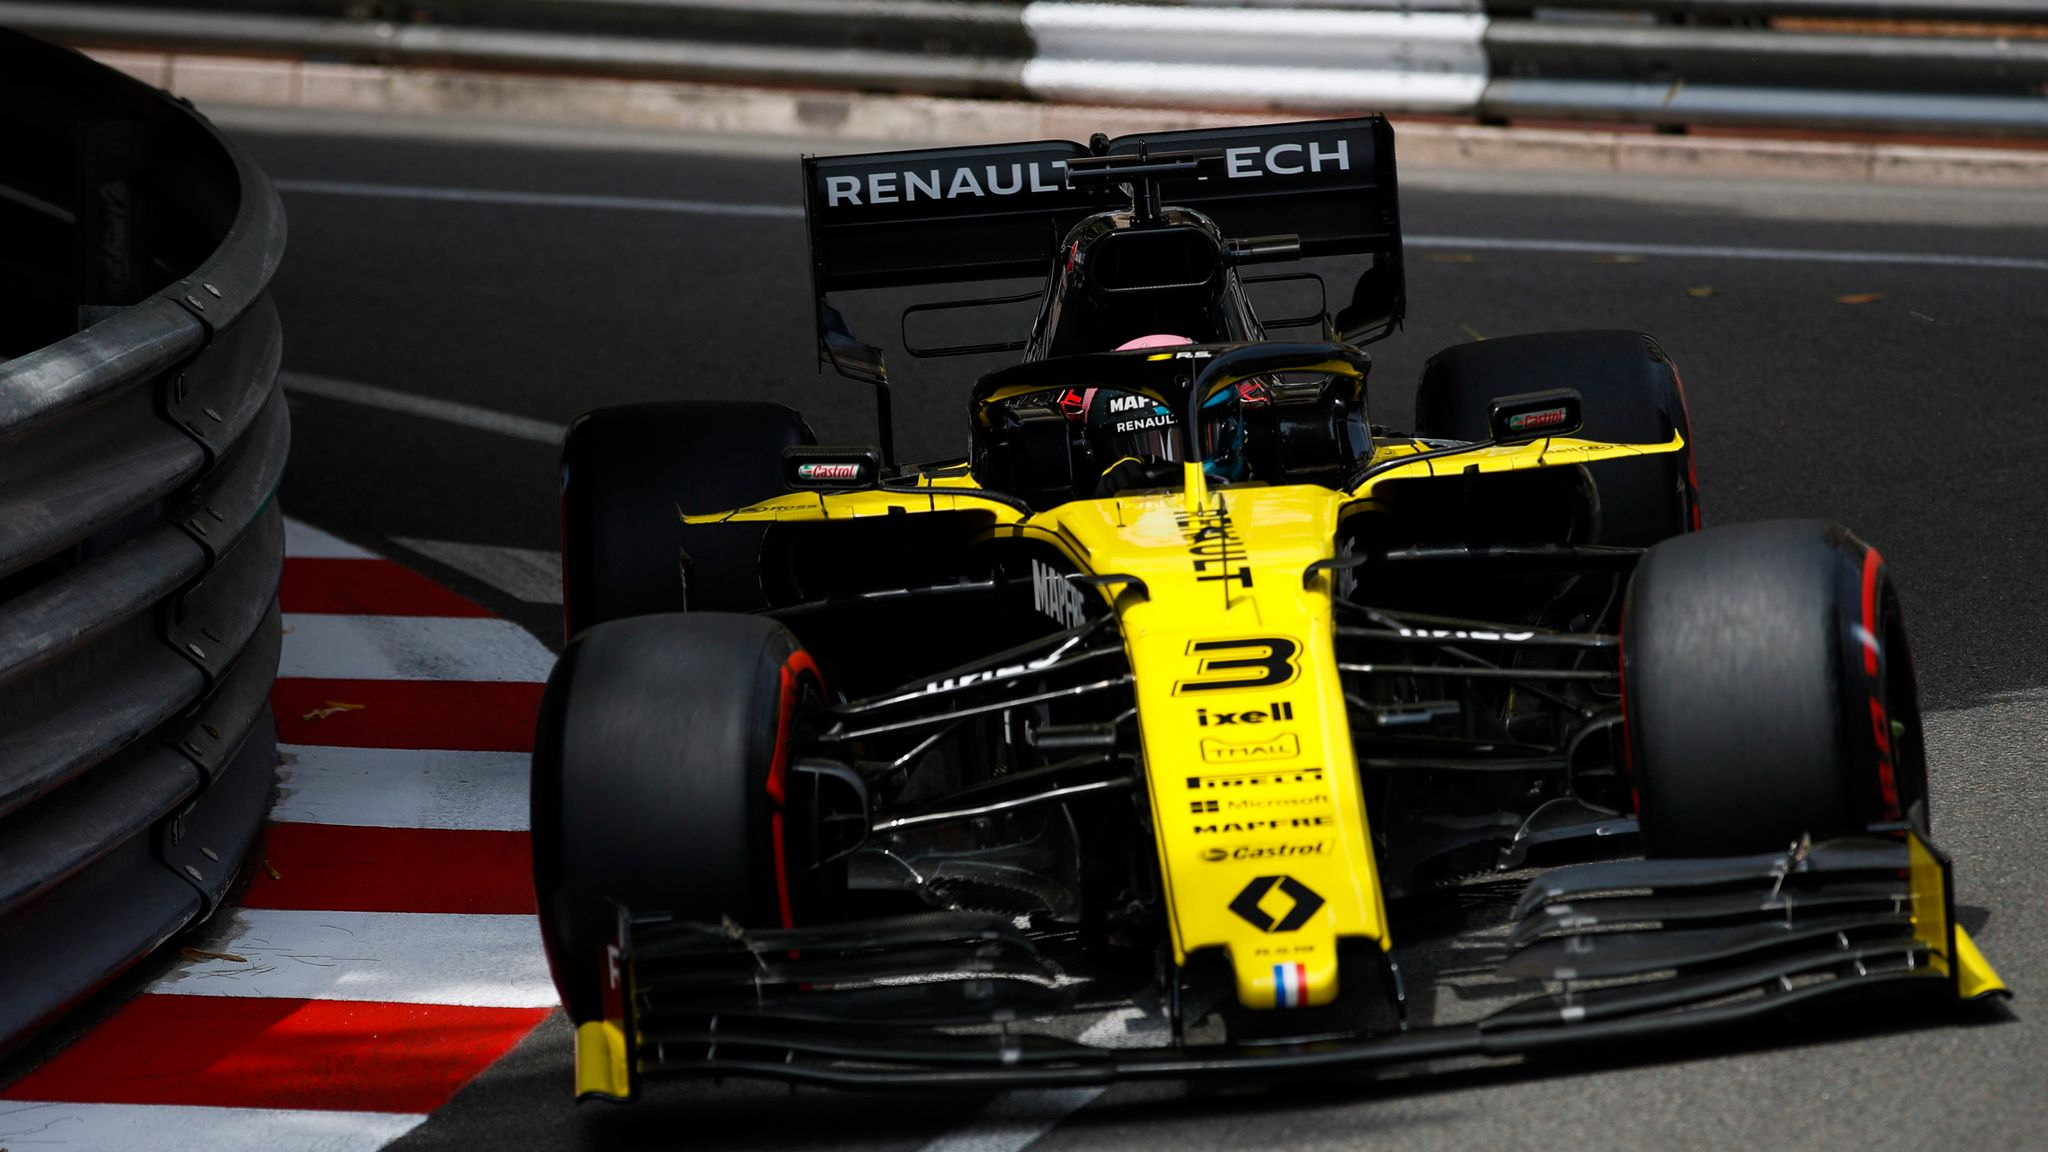 Renault Targeting F1 2019 Breakthrough After Difficult Start